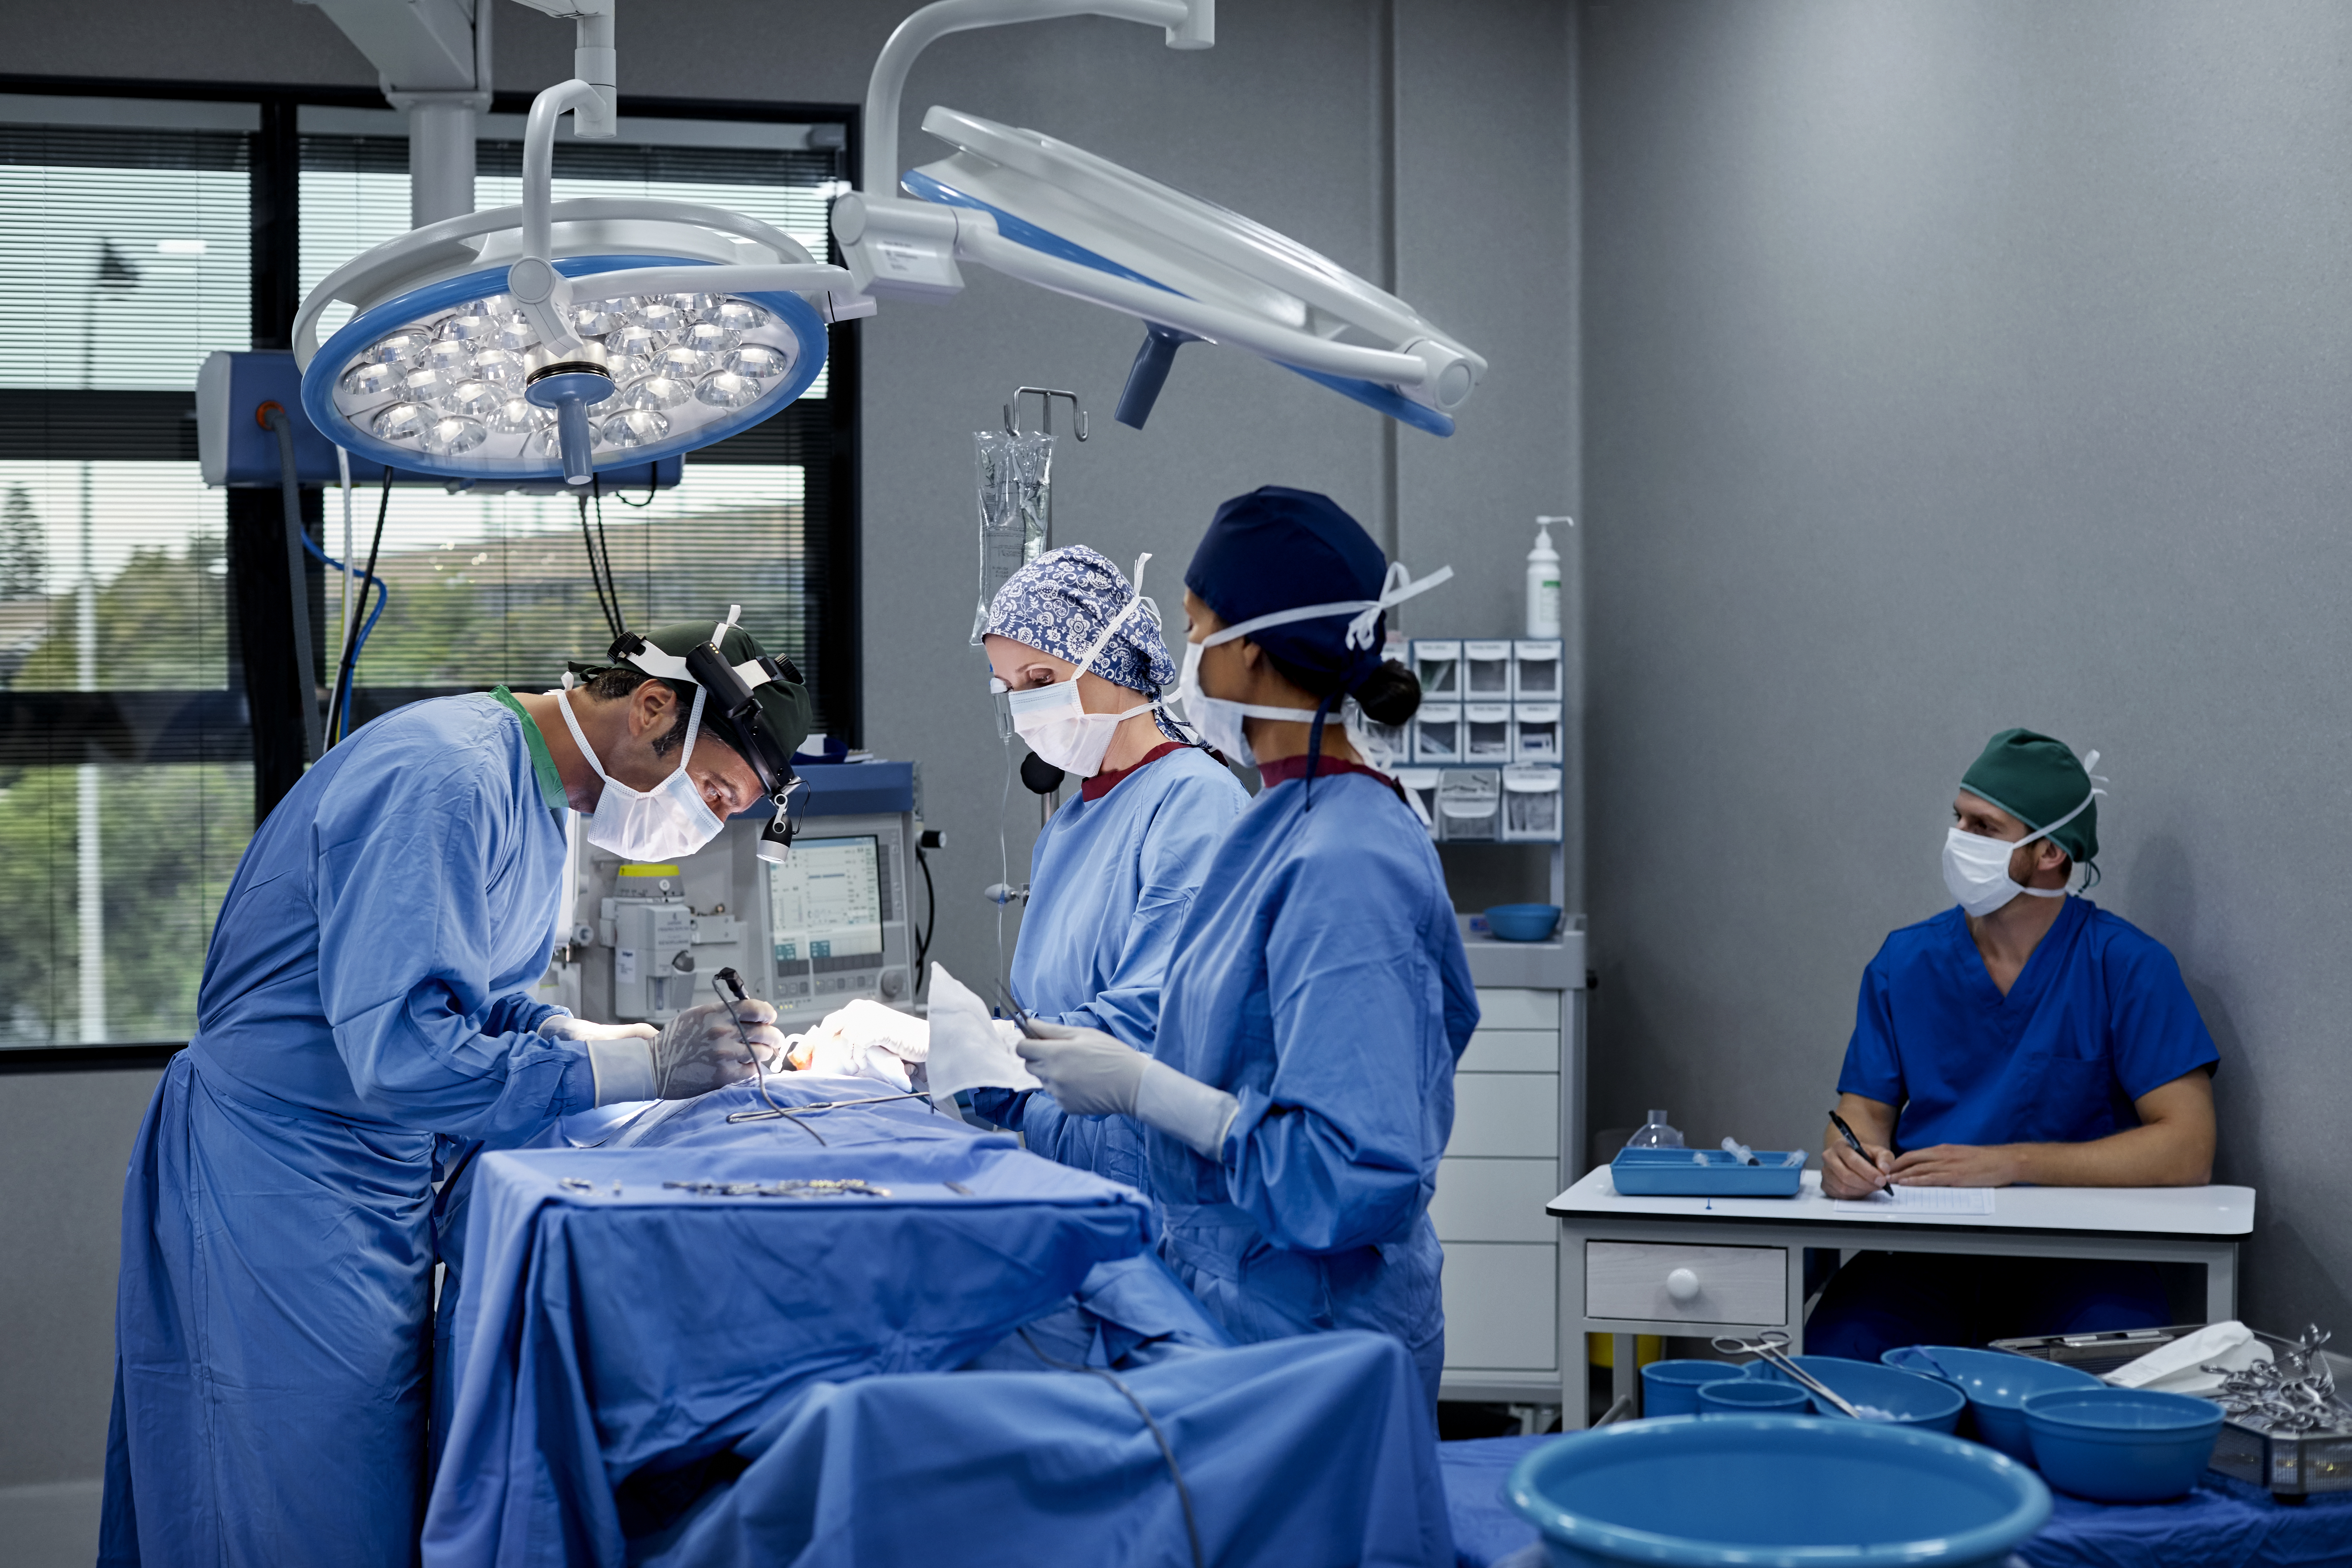 Surgeons operating patient in hospital